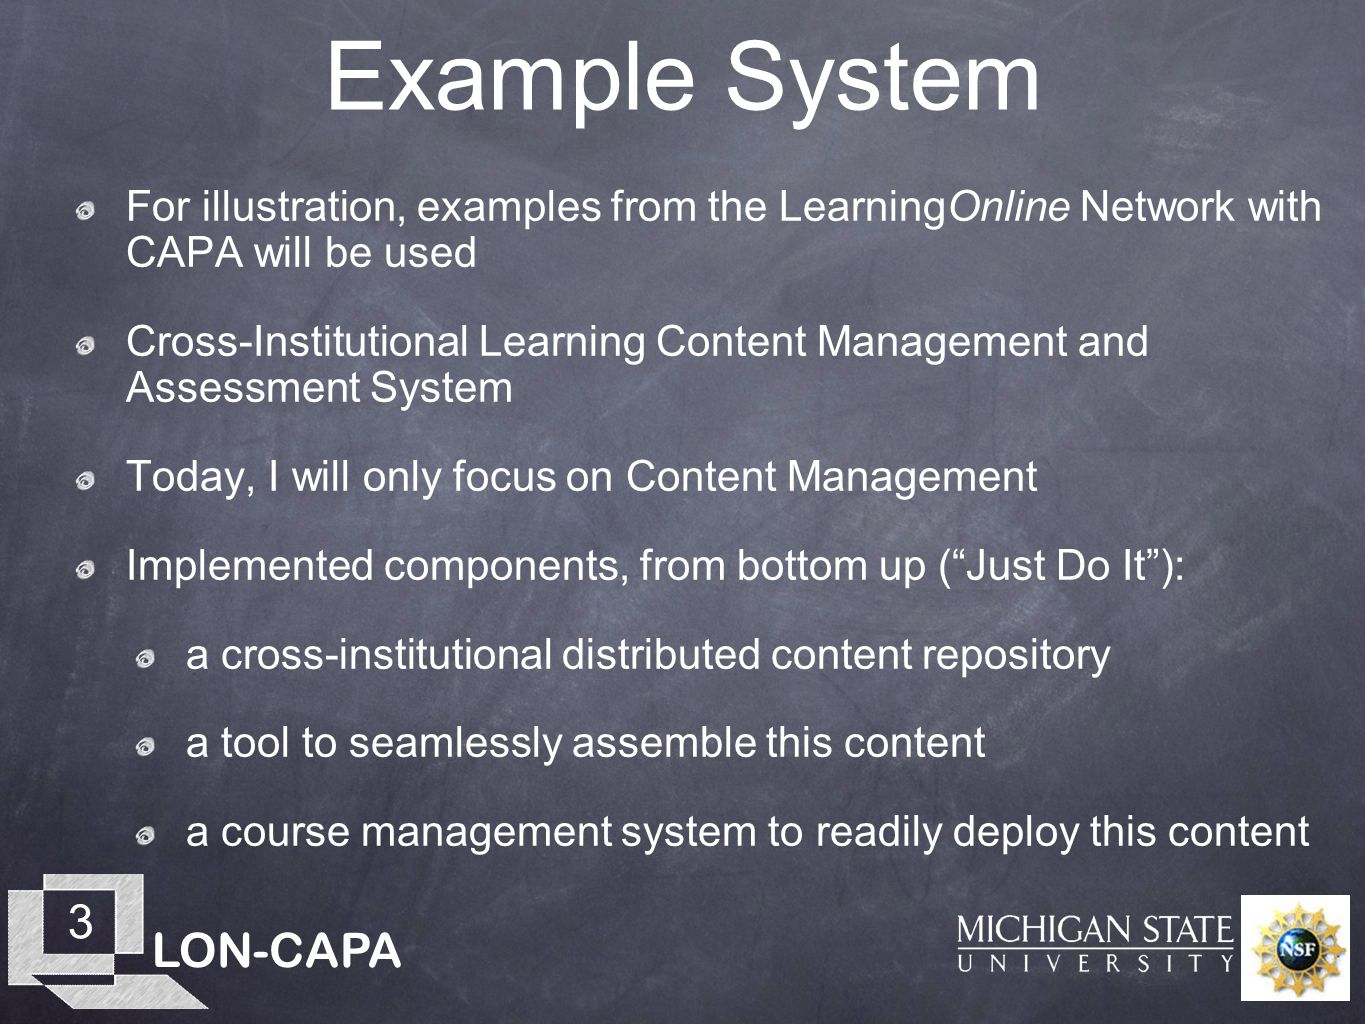 LON-CAPA 3 Example System For illustration, examples from the LearningOnline Network with CAPA will be used Cross-Institutional Learning Content Management and Assessment System Today, I will only focus on Content Management Implemented components, from bottom up (Just Do It): a cross-institutional distributed content repository a tool to seamlessly assemble this content a course management system to readily deploy this content